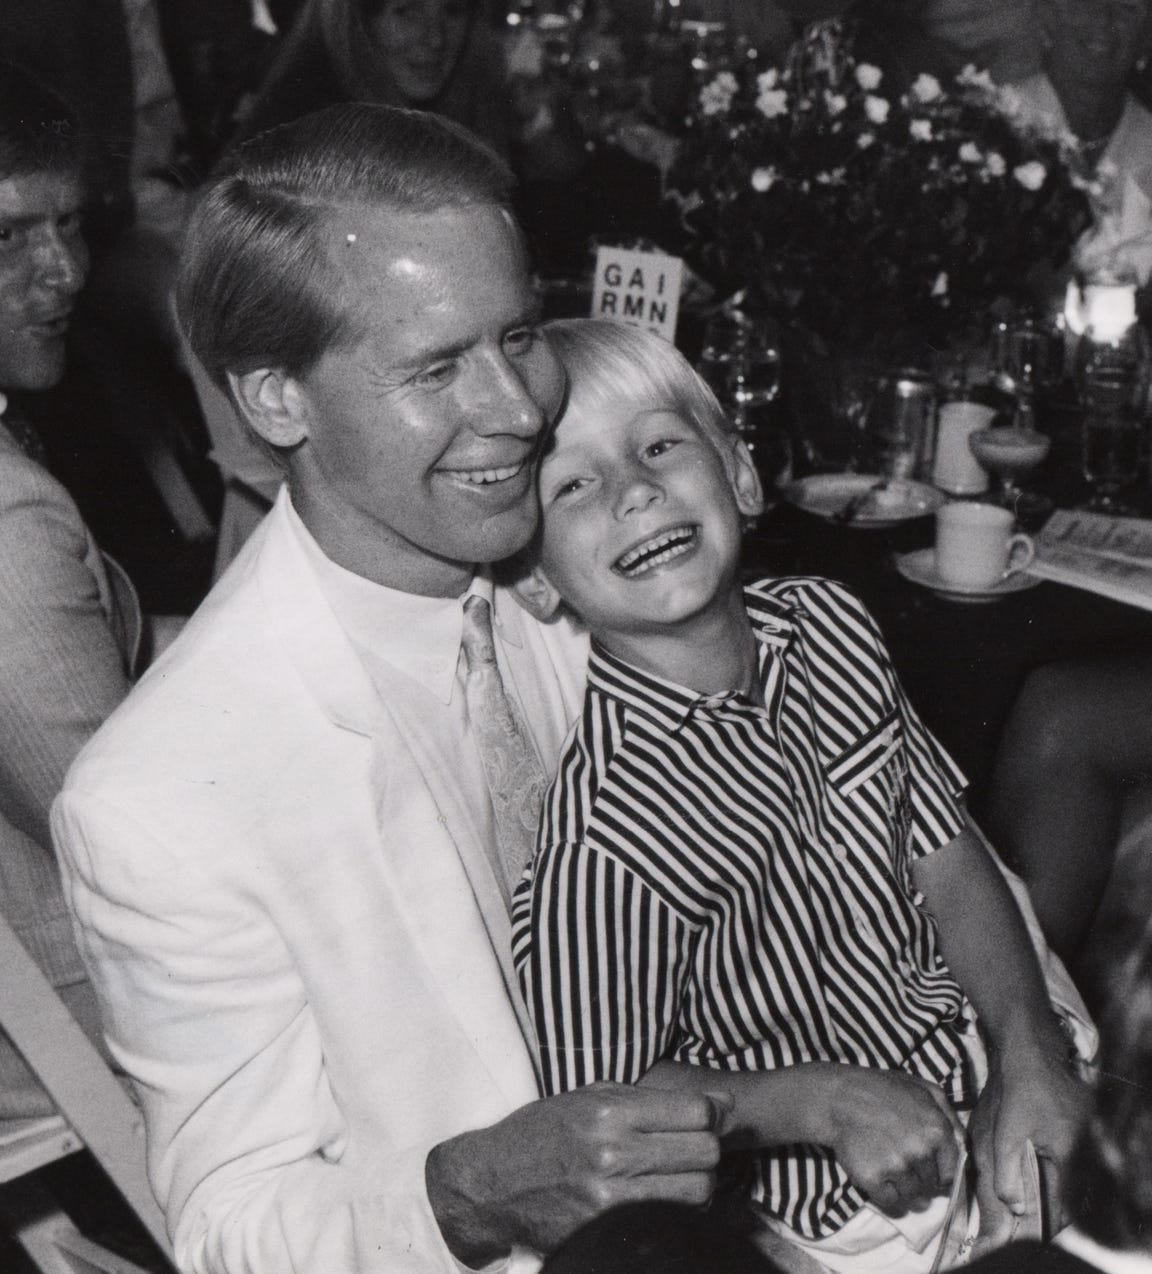 Lindner enjoys a laugh with his son, Carl Lindner IV, in 1990.